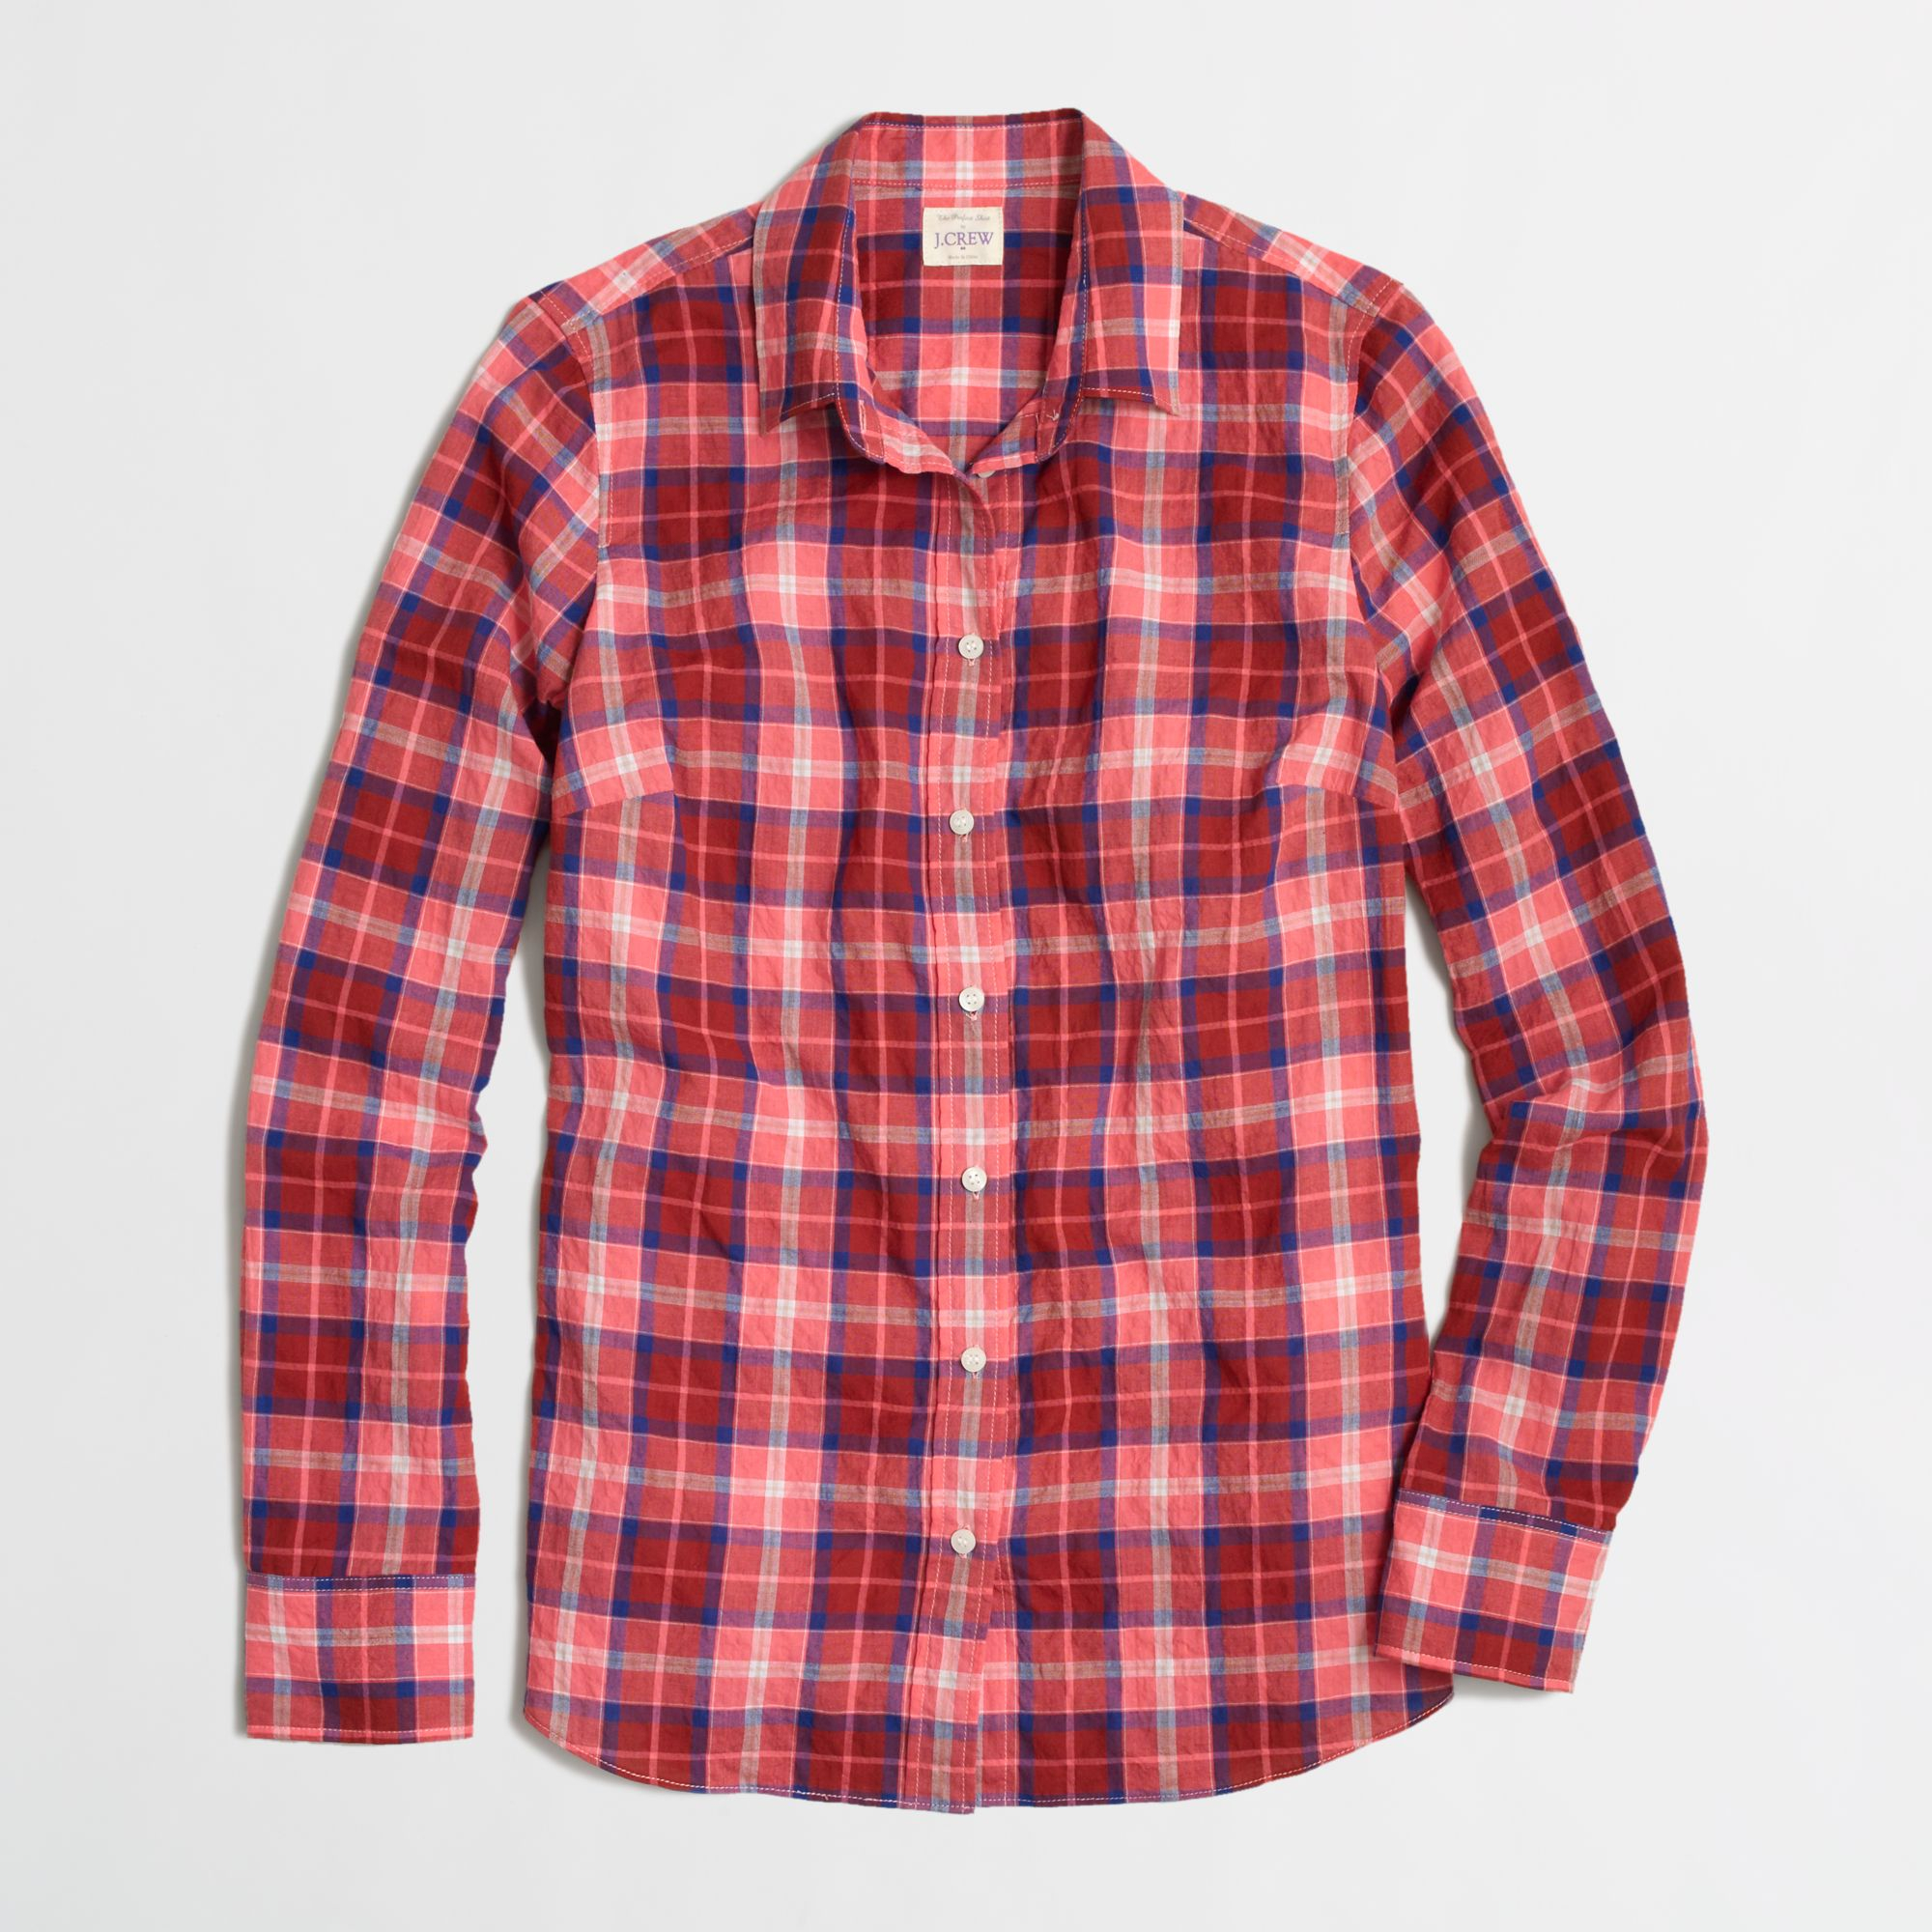 J.crew Factory Classic Buttondown Shirt in Suckered Plaid in Red ...